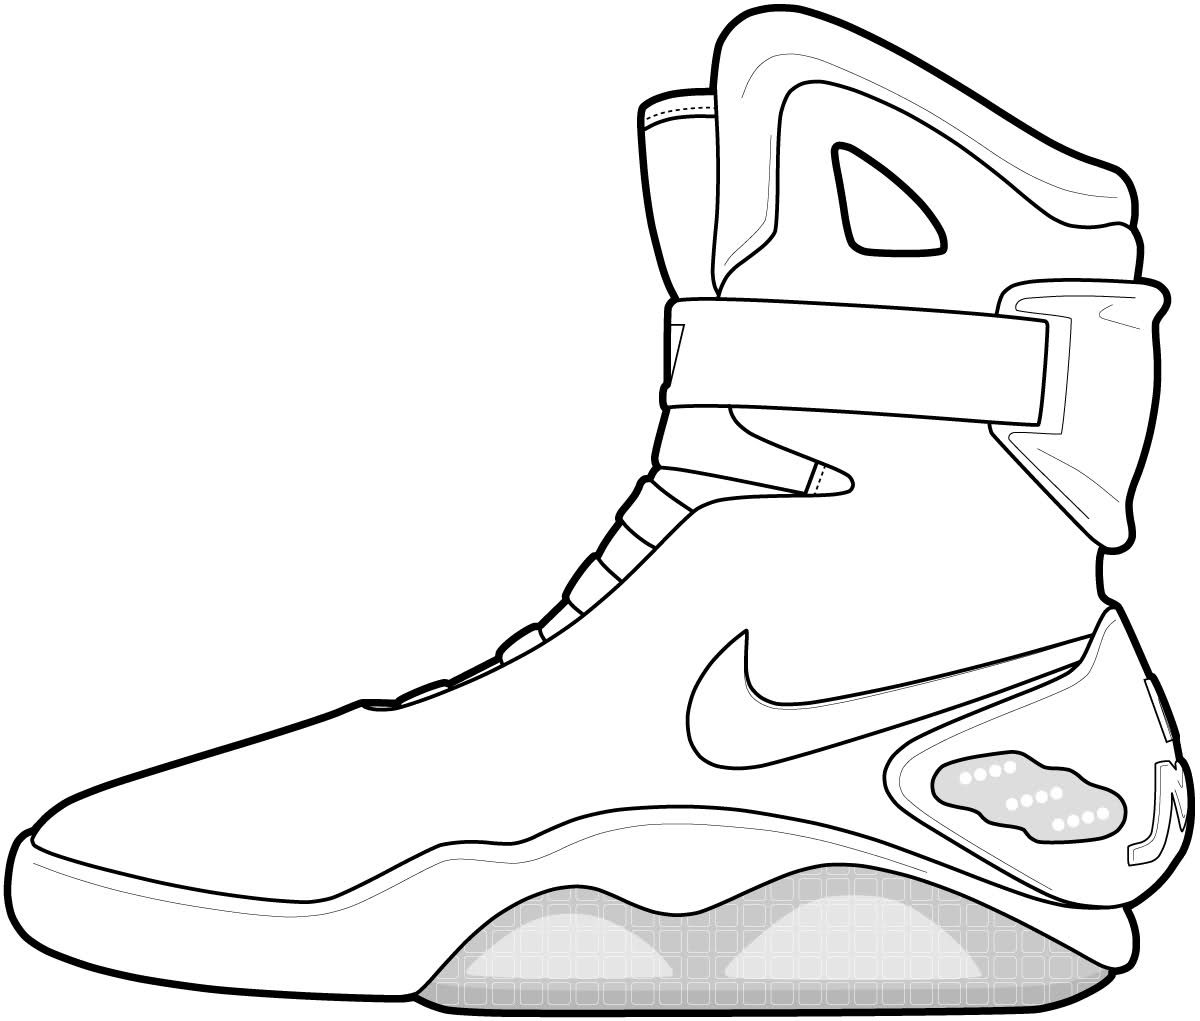 1200x1021 Michael Jordan Shoe Coloring Pages. Jordan Shoe Coloring Page